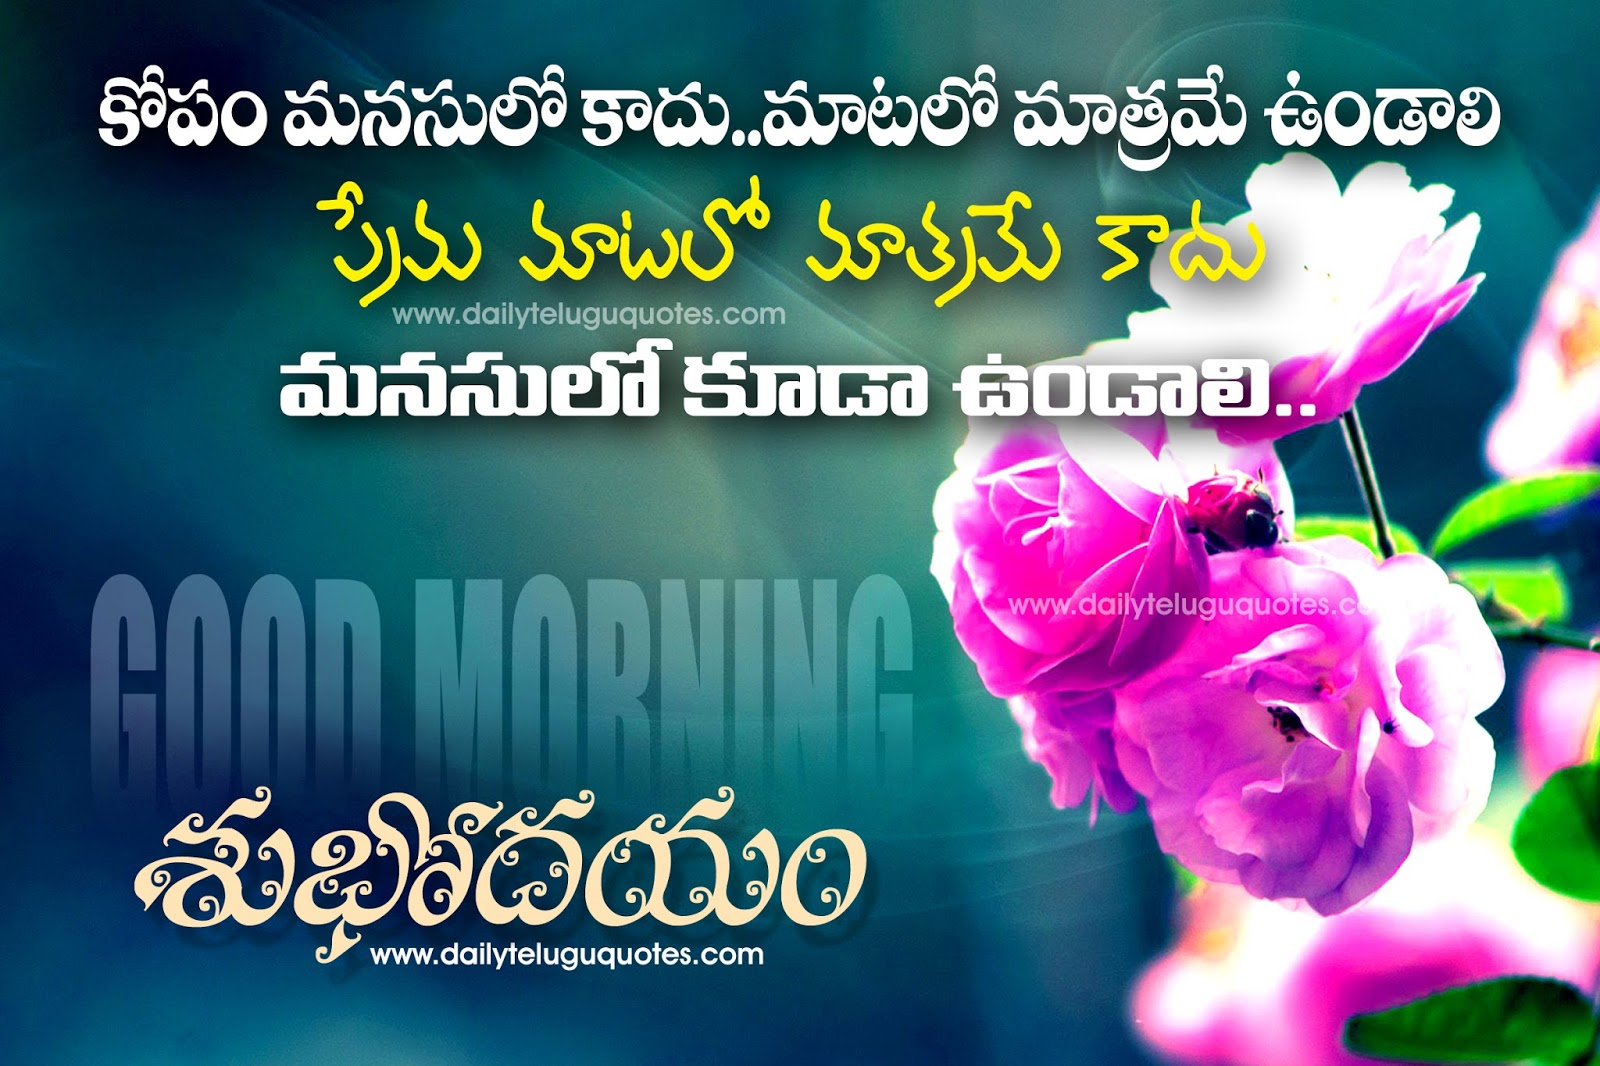 Good Morning Quotes Images In Telugu For Whatsapp